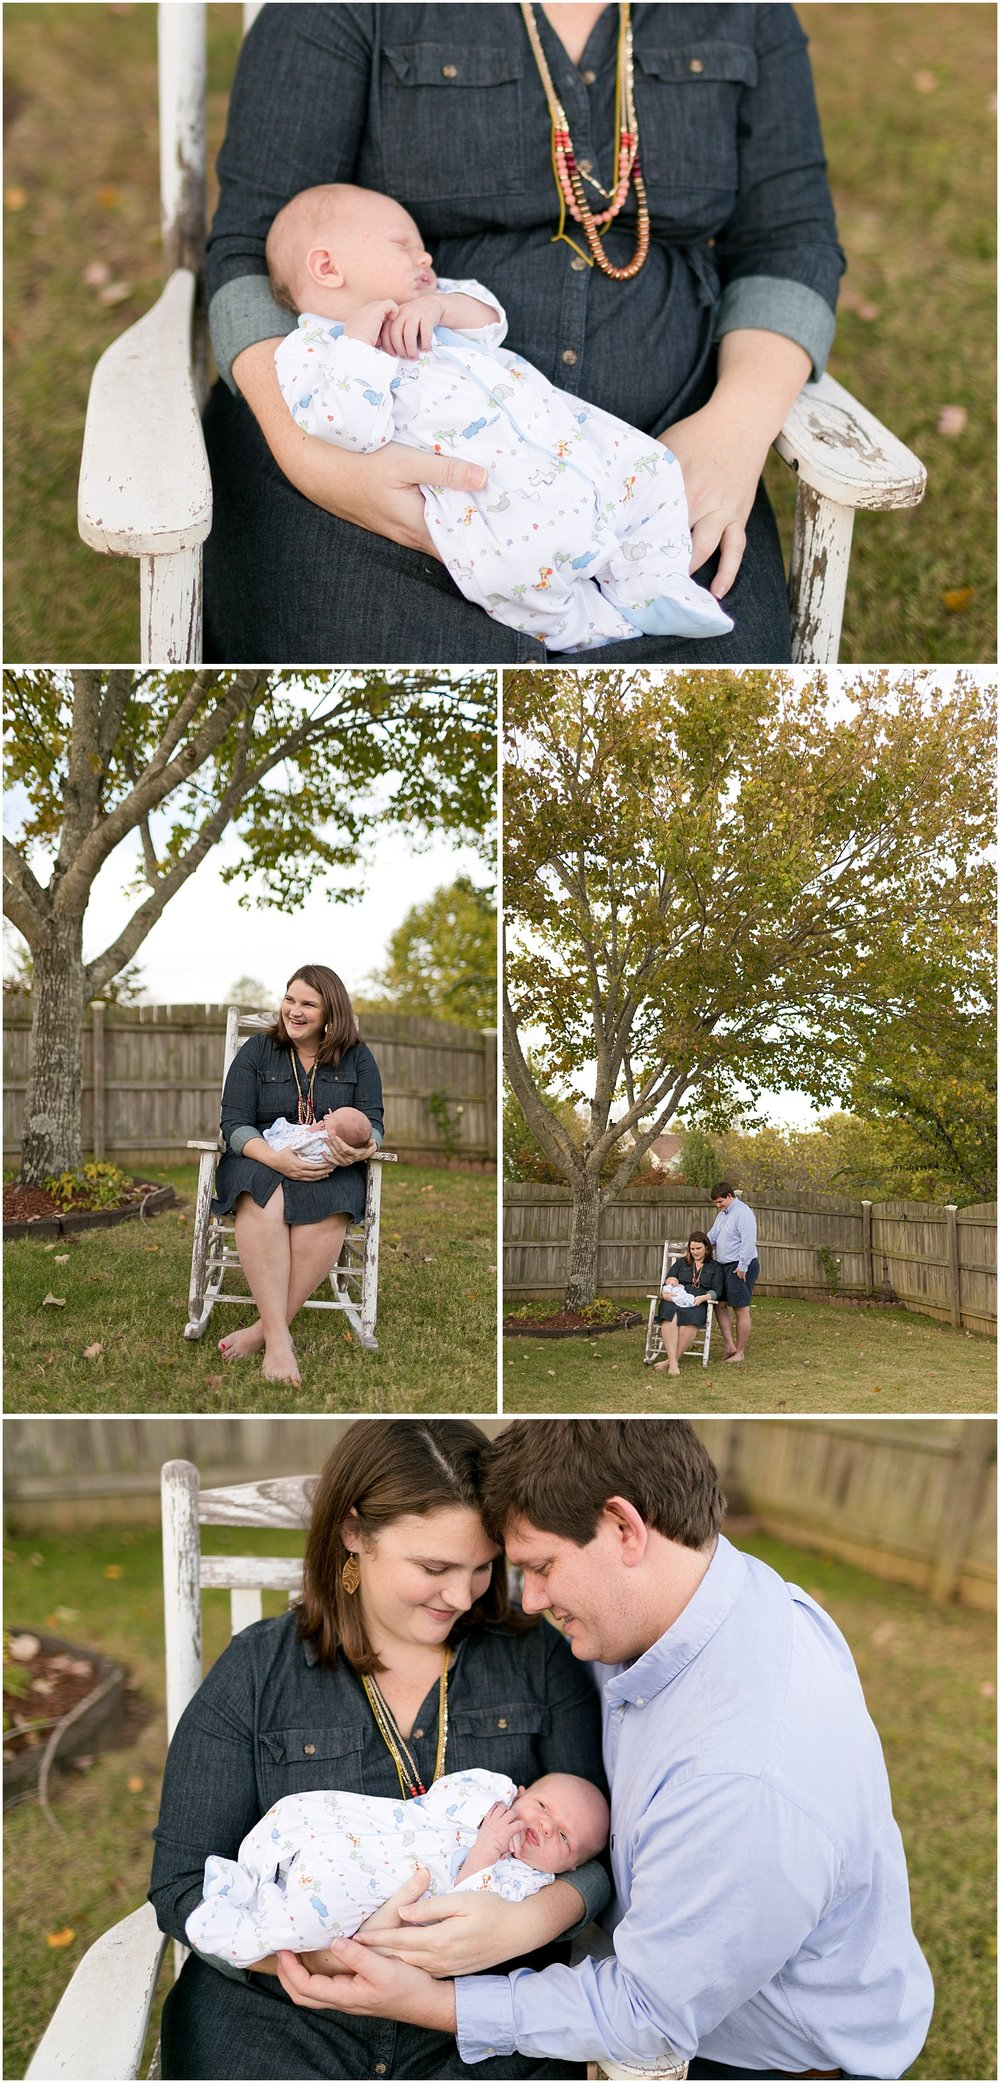 rustic outdoor newborn photos with rocking chair, fence in backyard